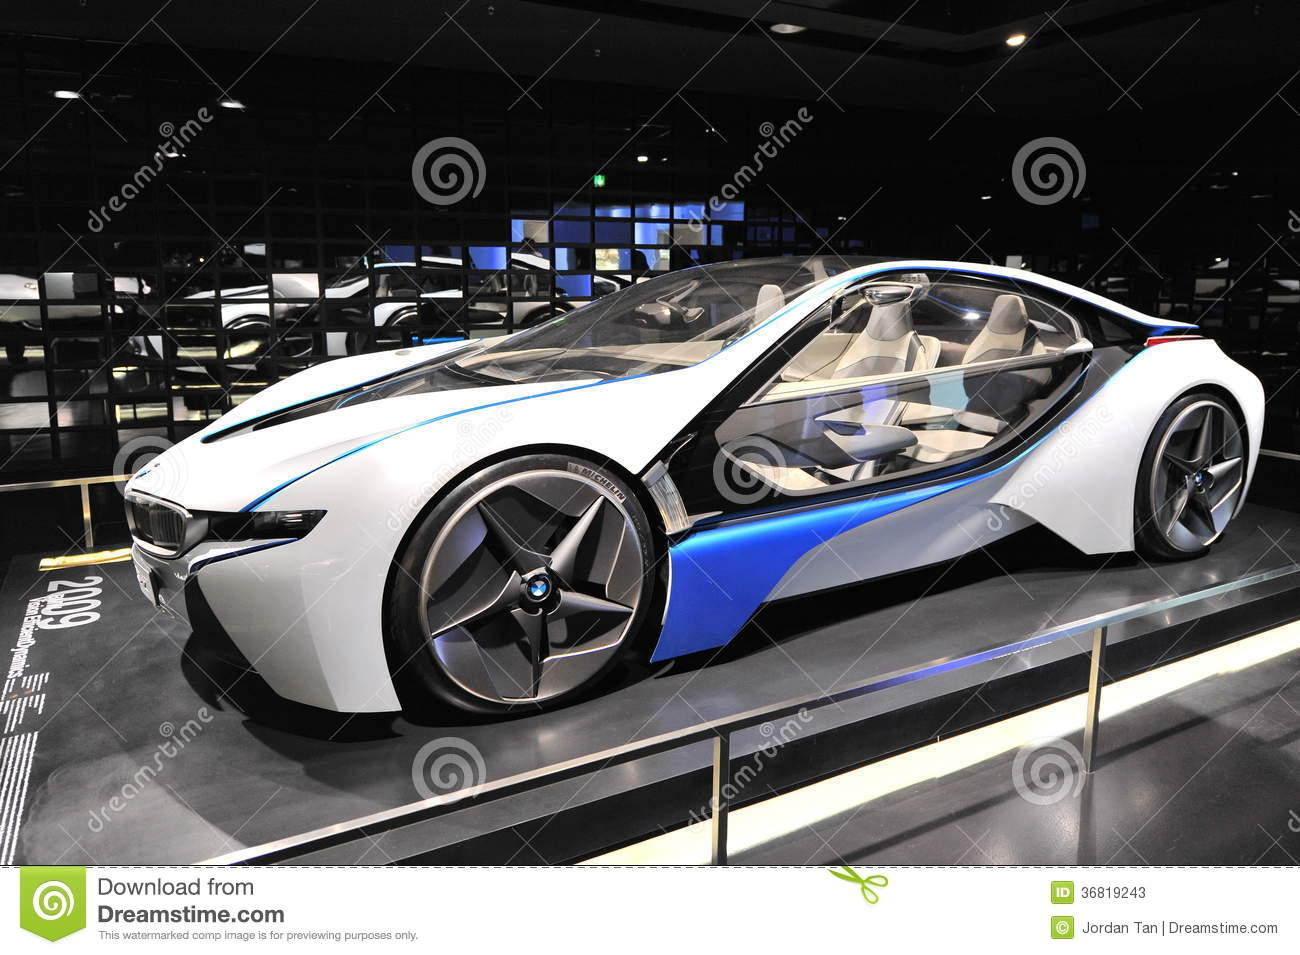 bmw vision efficient dynamics concept car editorial photo 21296687. Black Bedroom Furniture Sets. Home Design Ideas